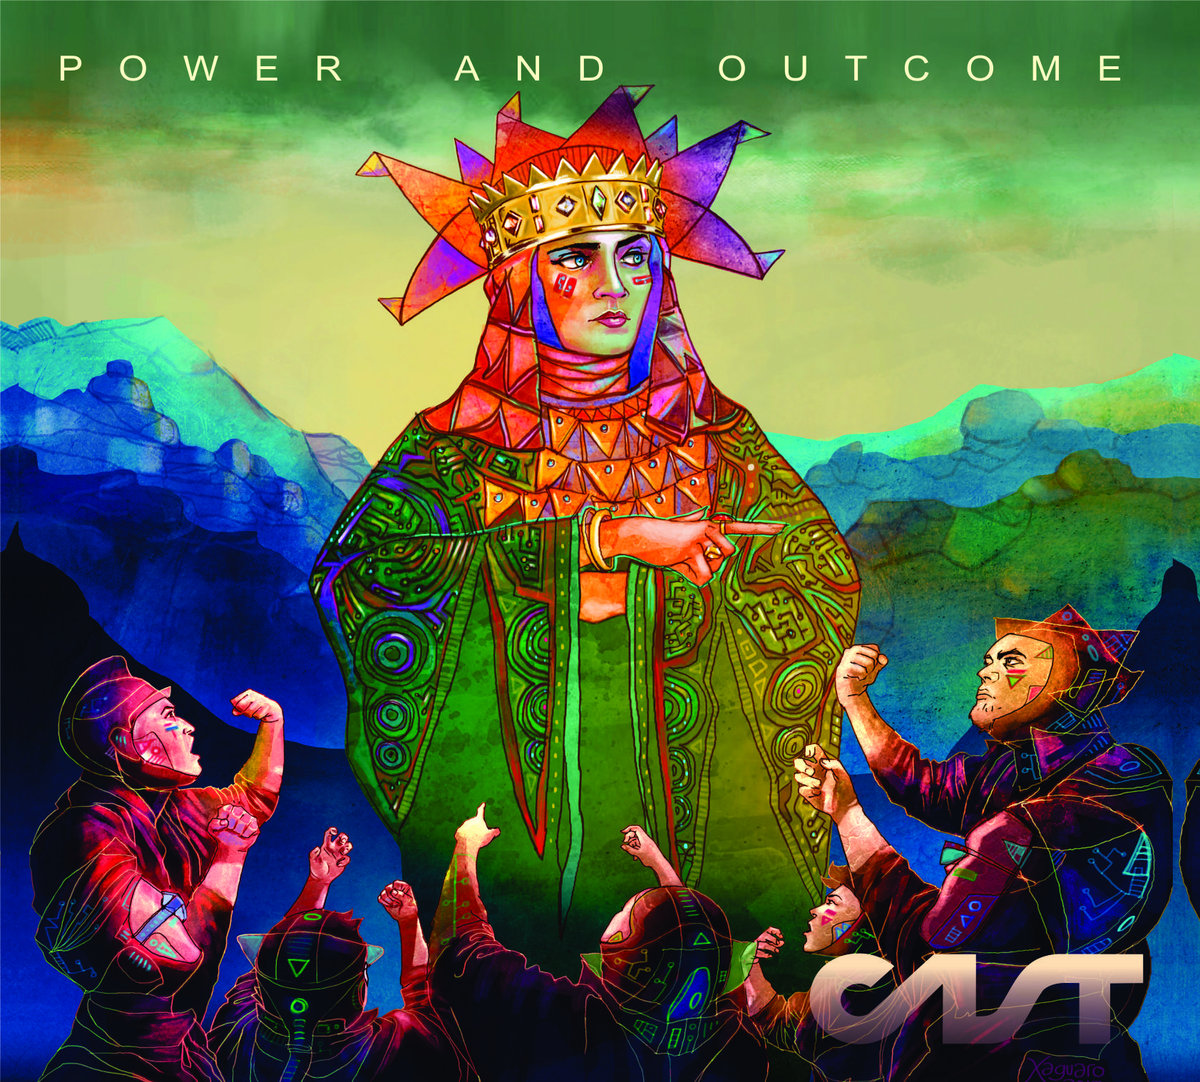 Cast: Power and Outcome